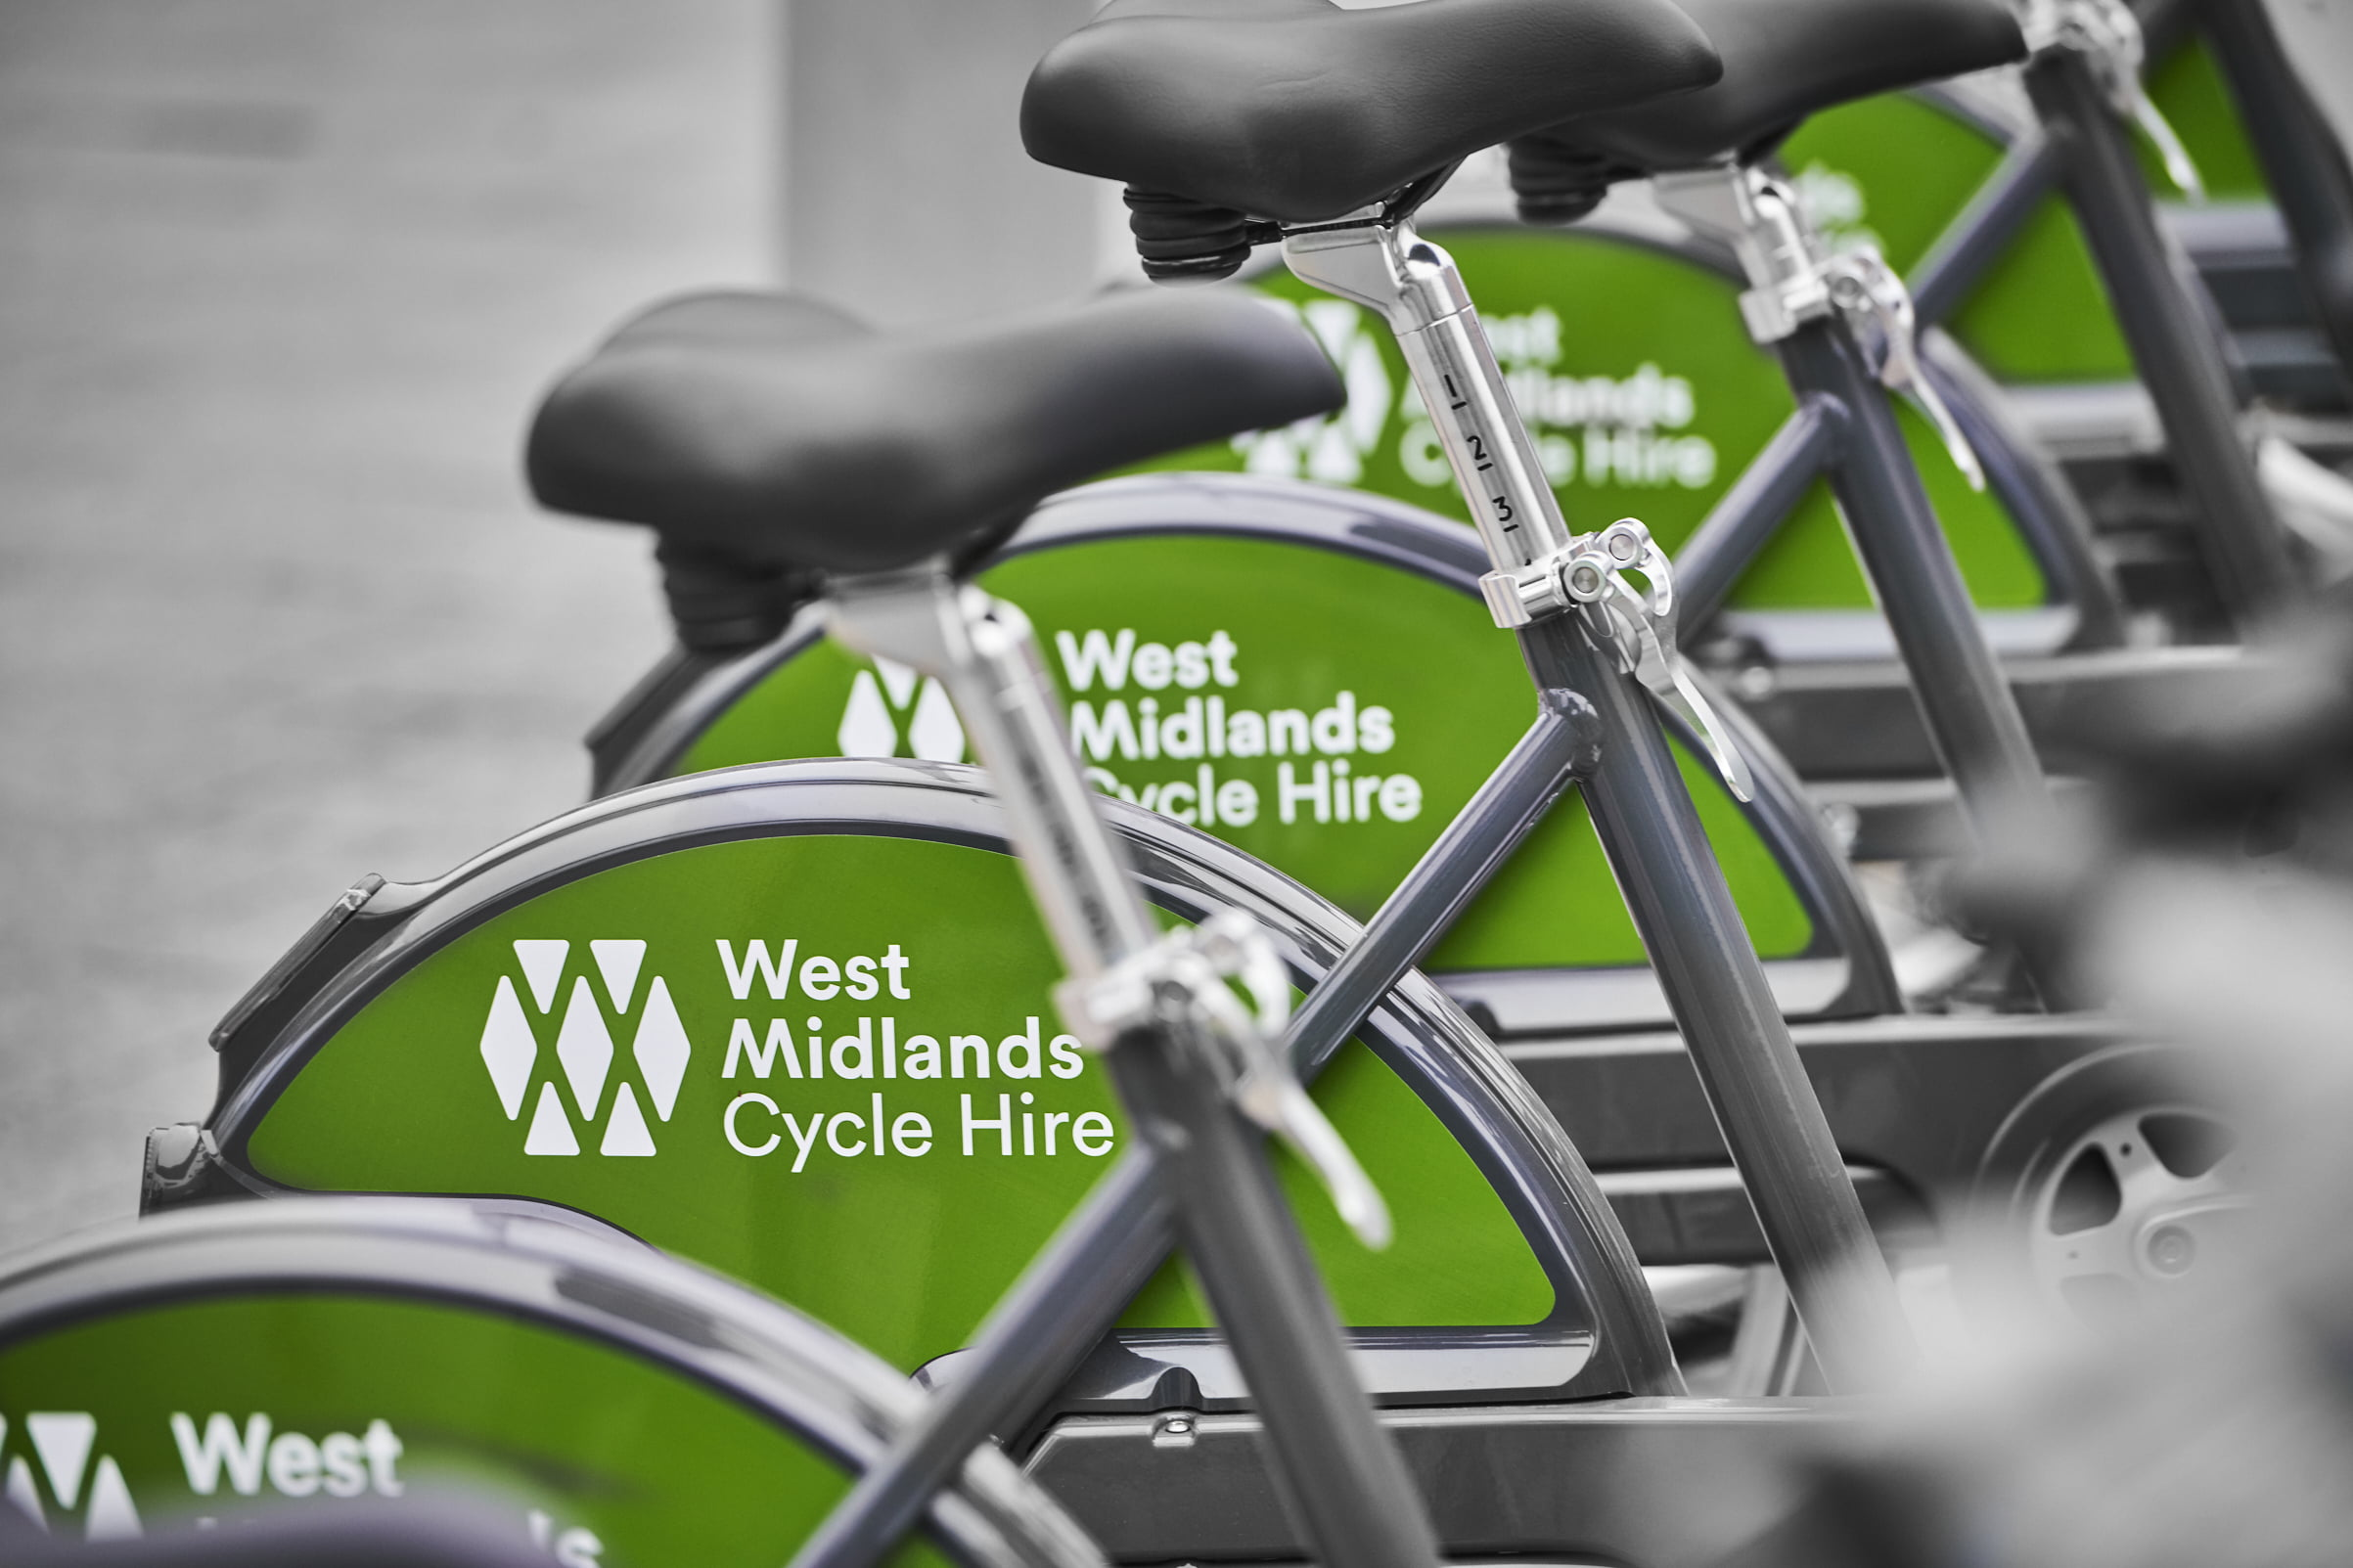 West Midlansd Cycle Hire